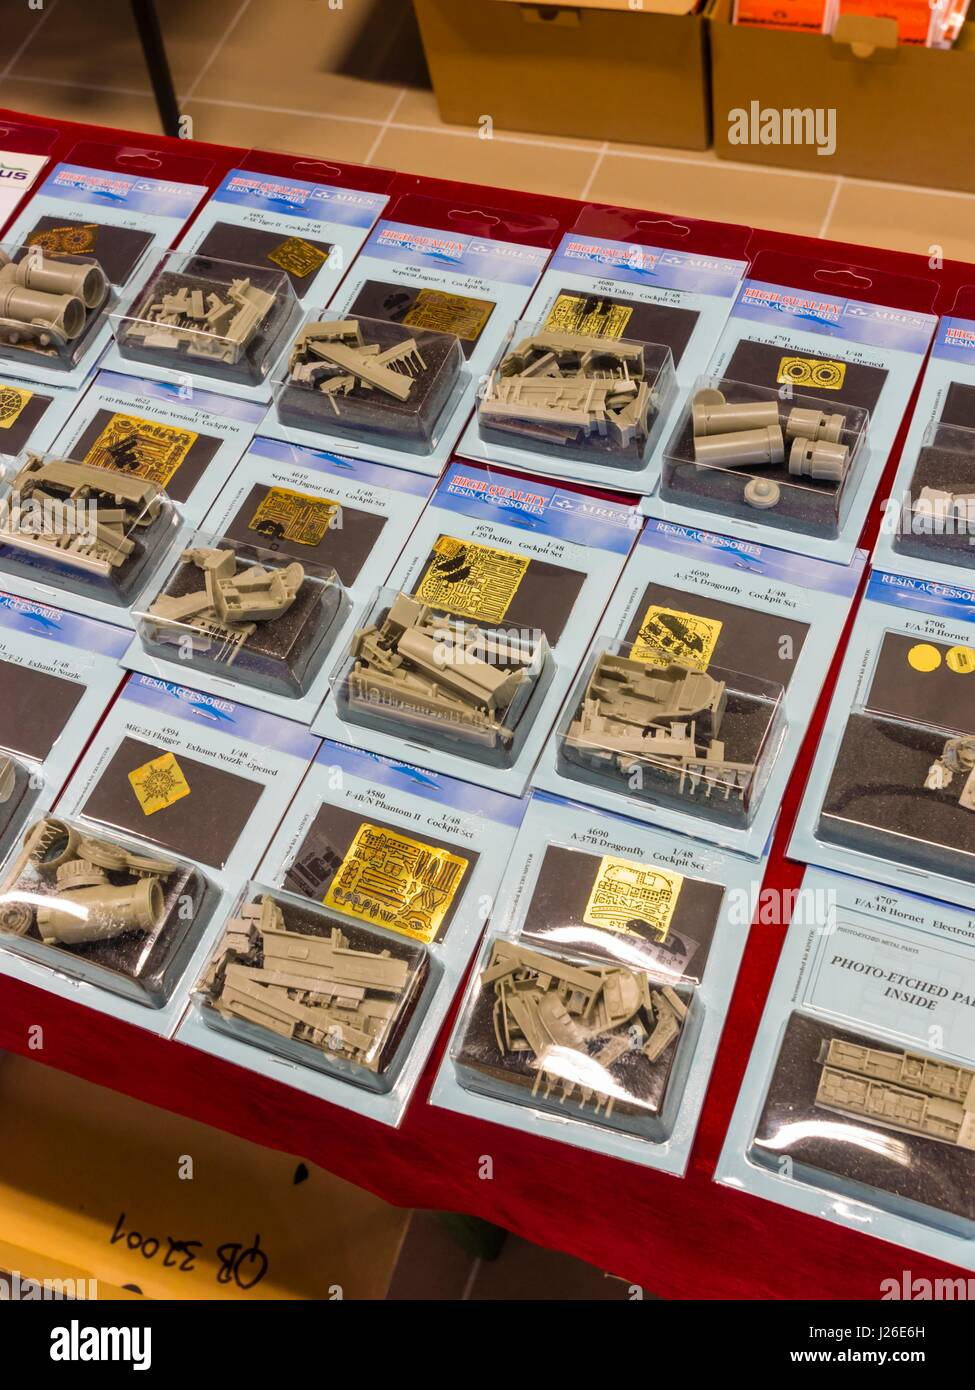 Plastic model kits Aires accessories aftermarket after